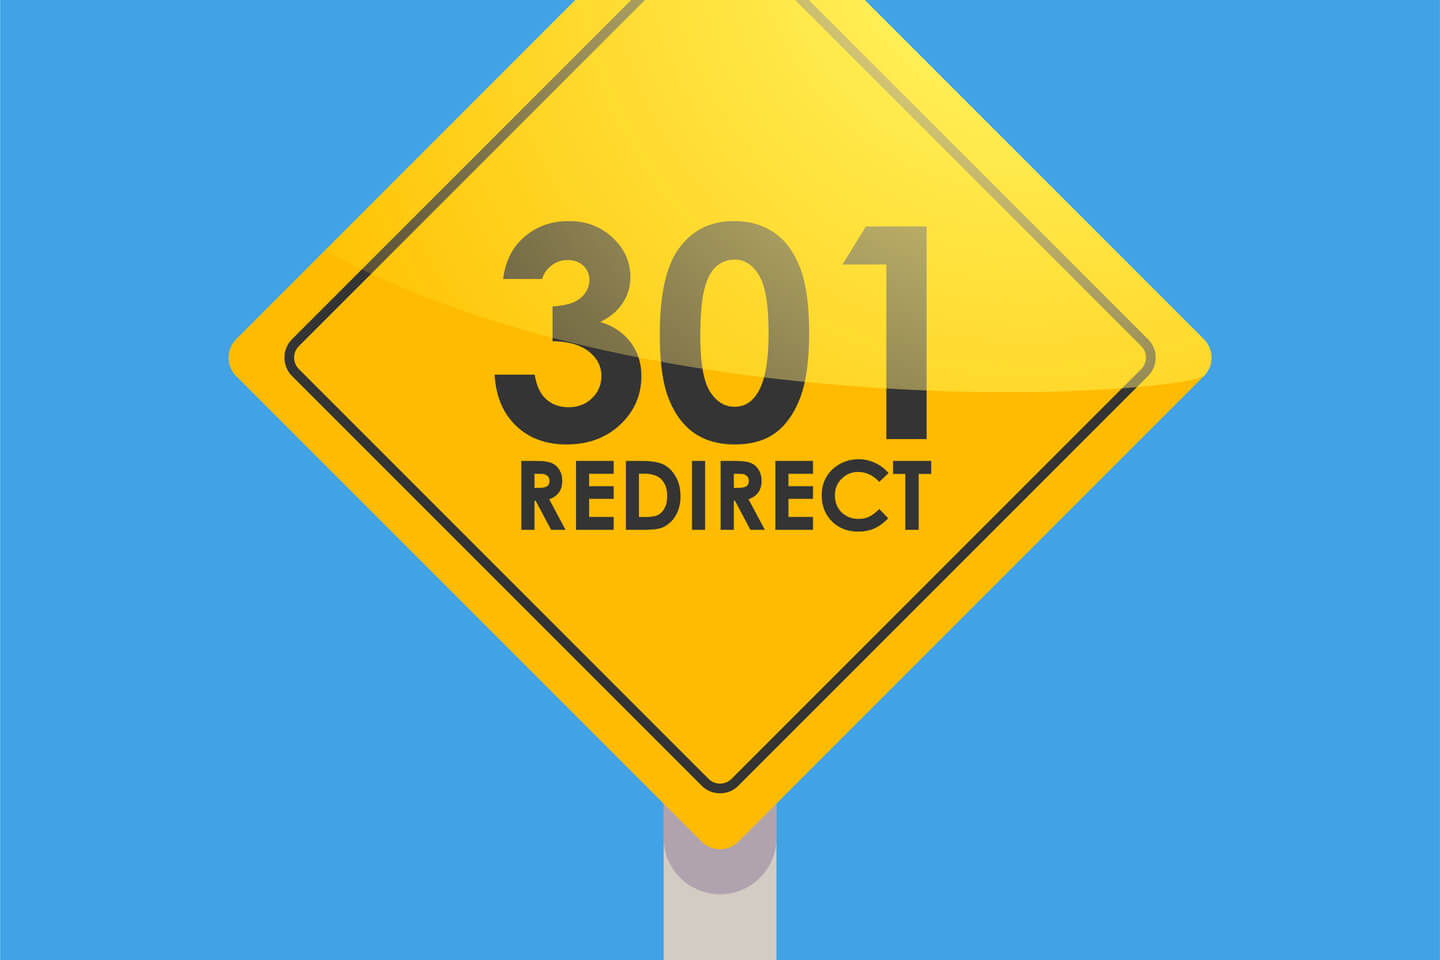 Managing 301 Redirects